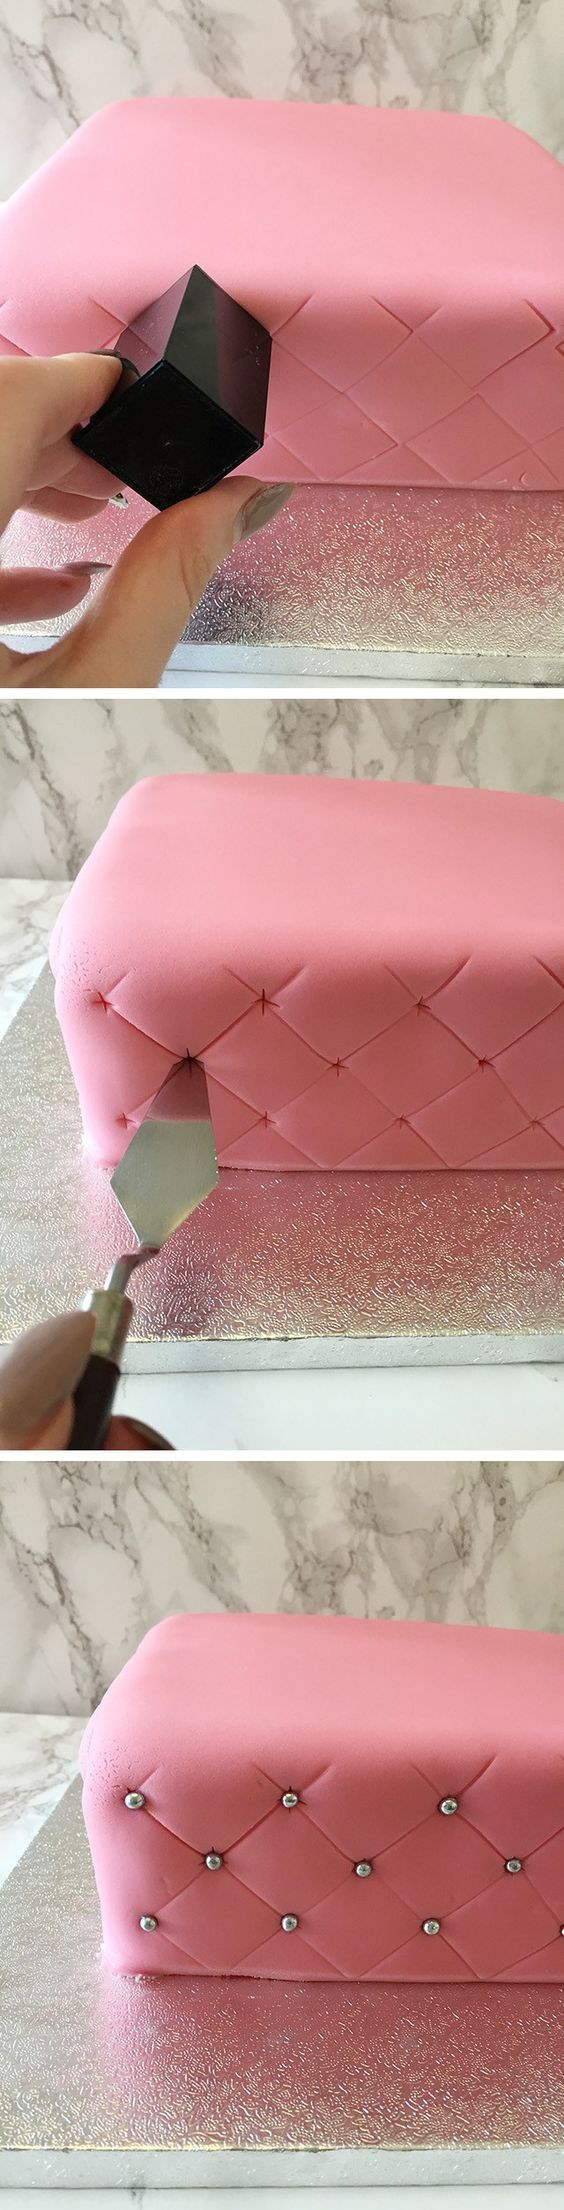 If you are decorating your own cake, here is a simple way to create some fab quilted effects.